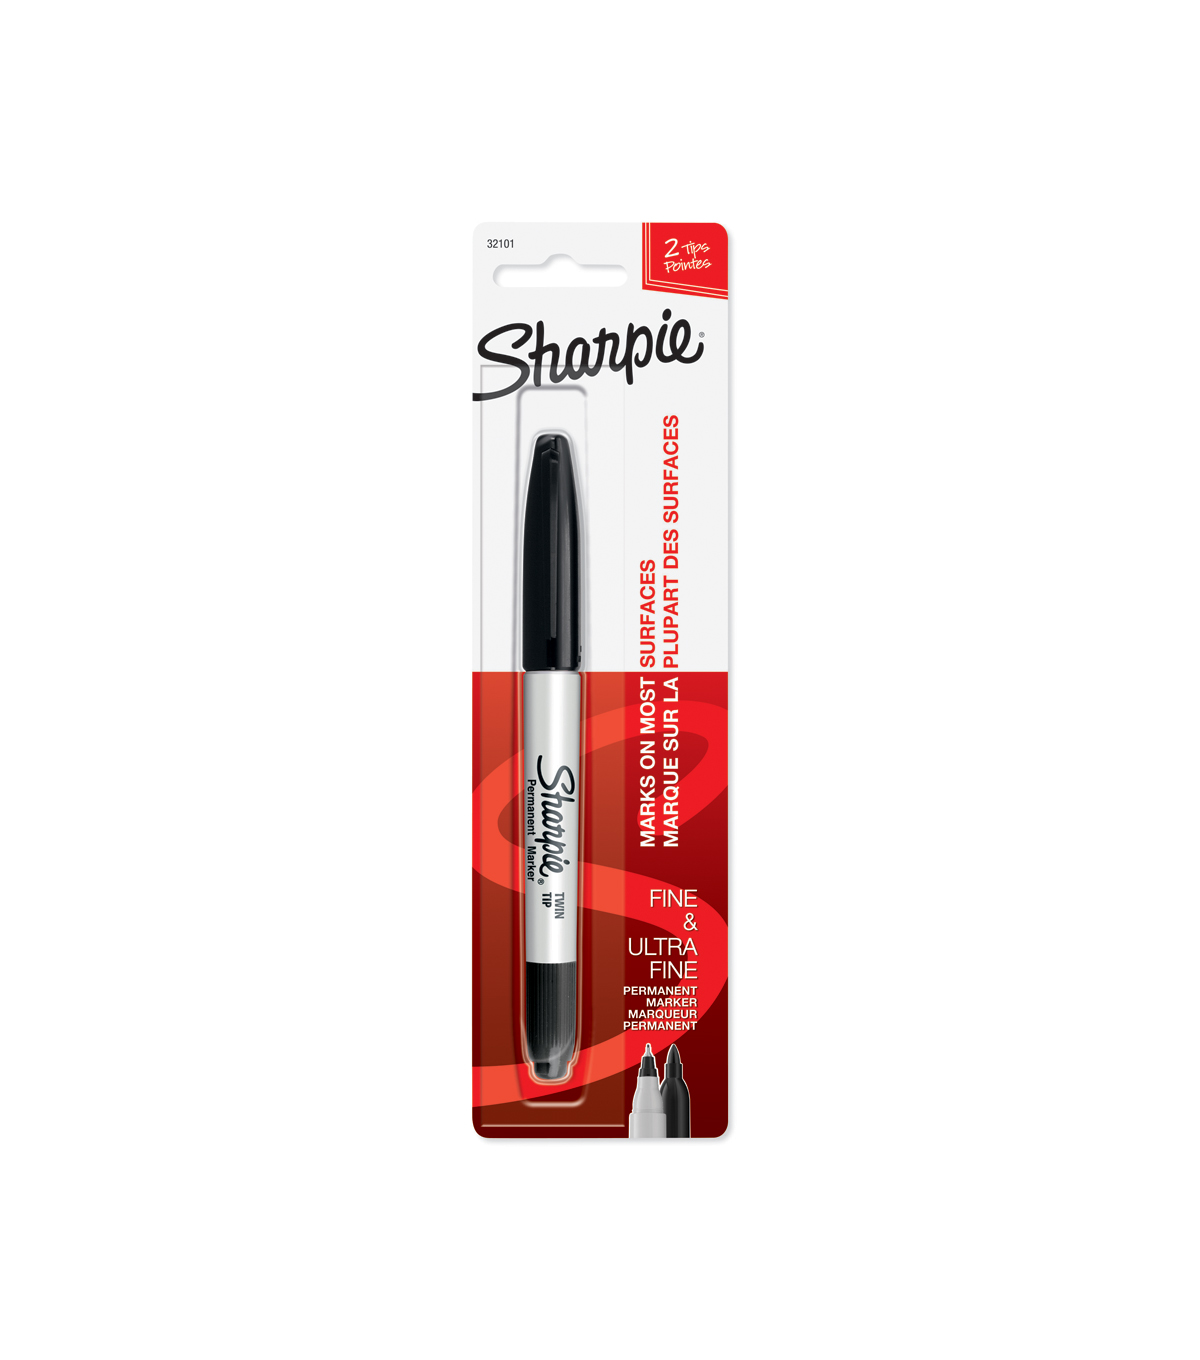 Sharpie Permanent Marker Twin Tip-Ultra Fine/Fine